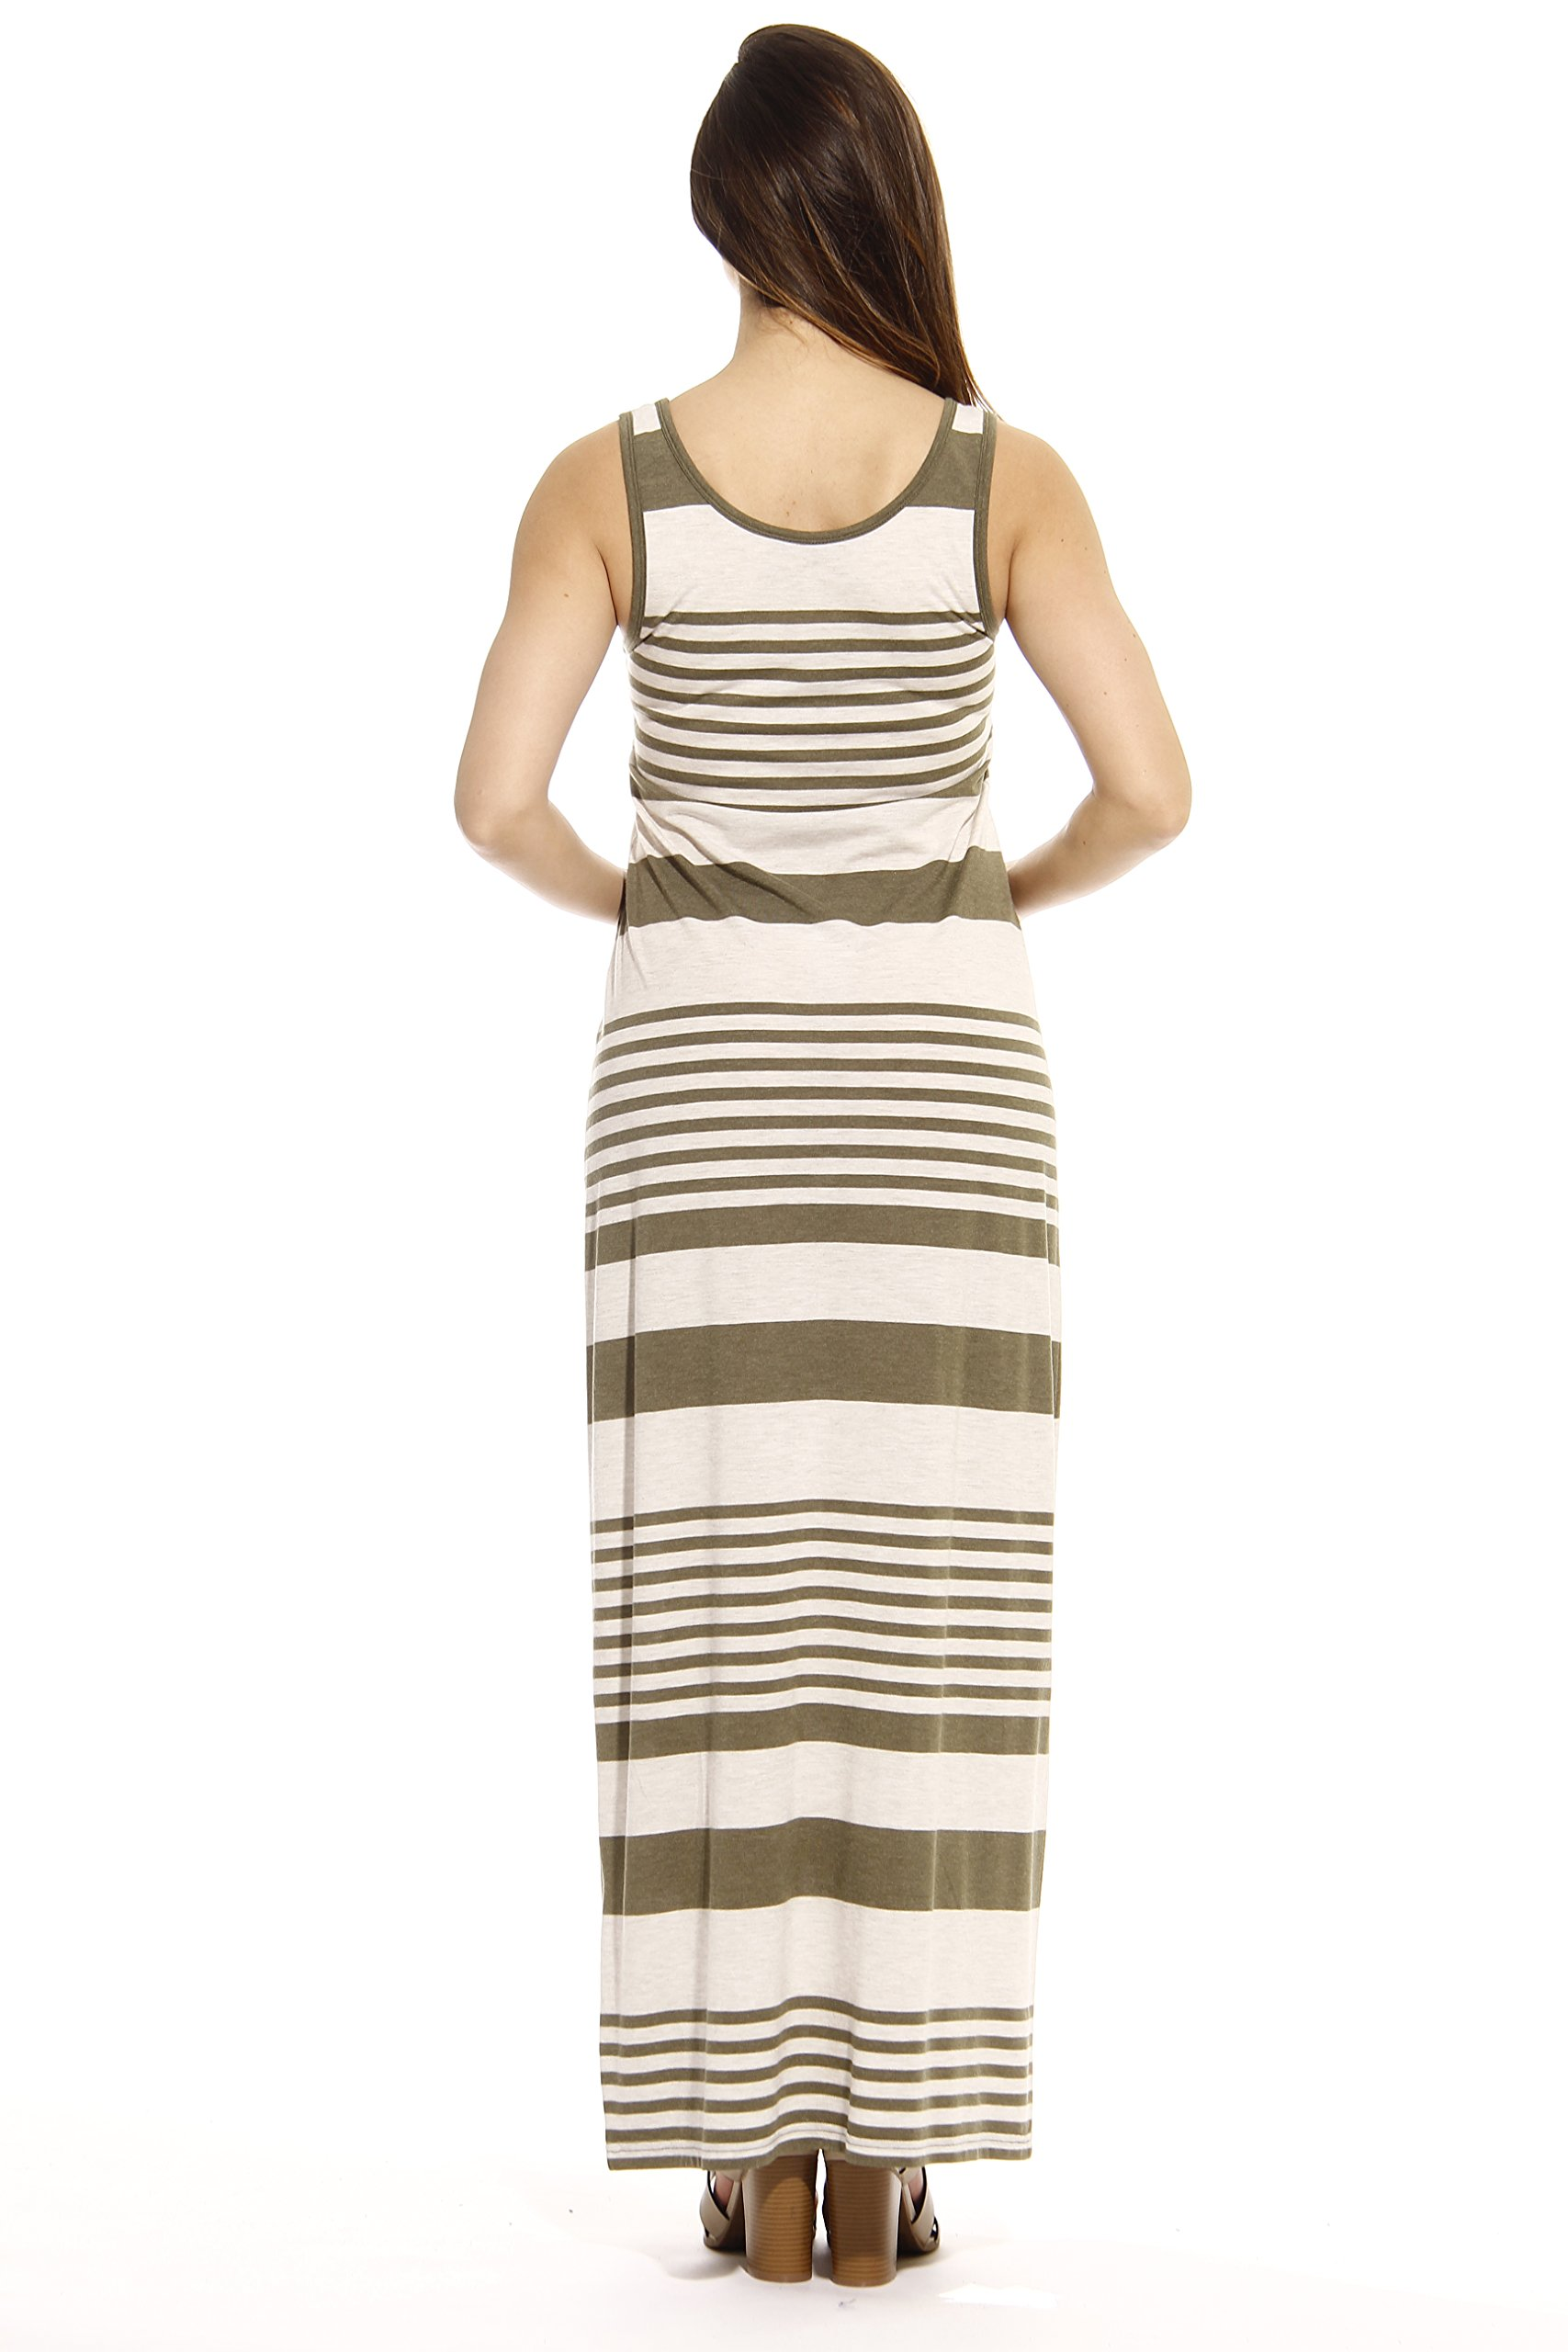 3007-138-OLVC-3X Just Love Summer Dresses / Maxi Dress by Just Love (Image #3)